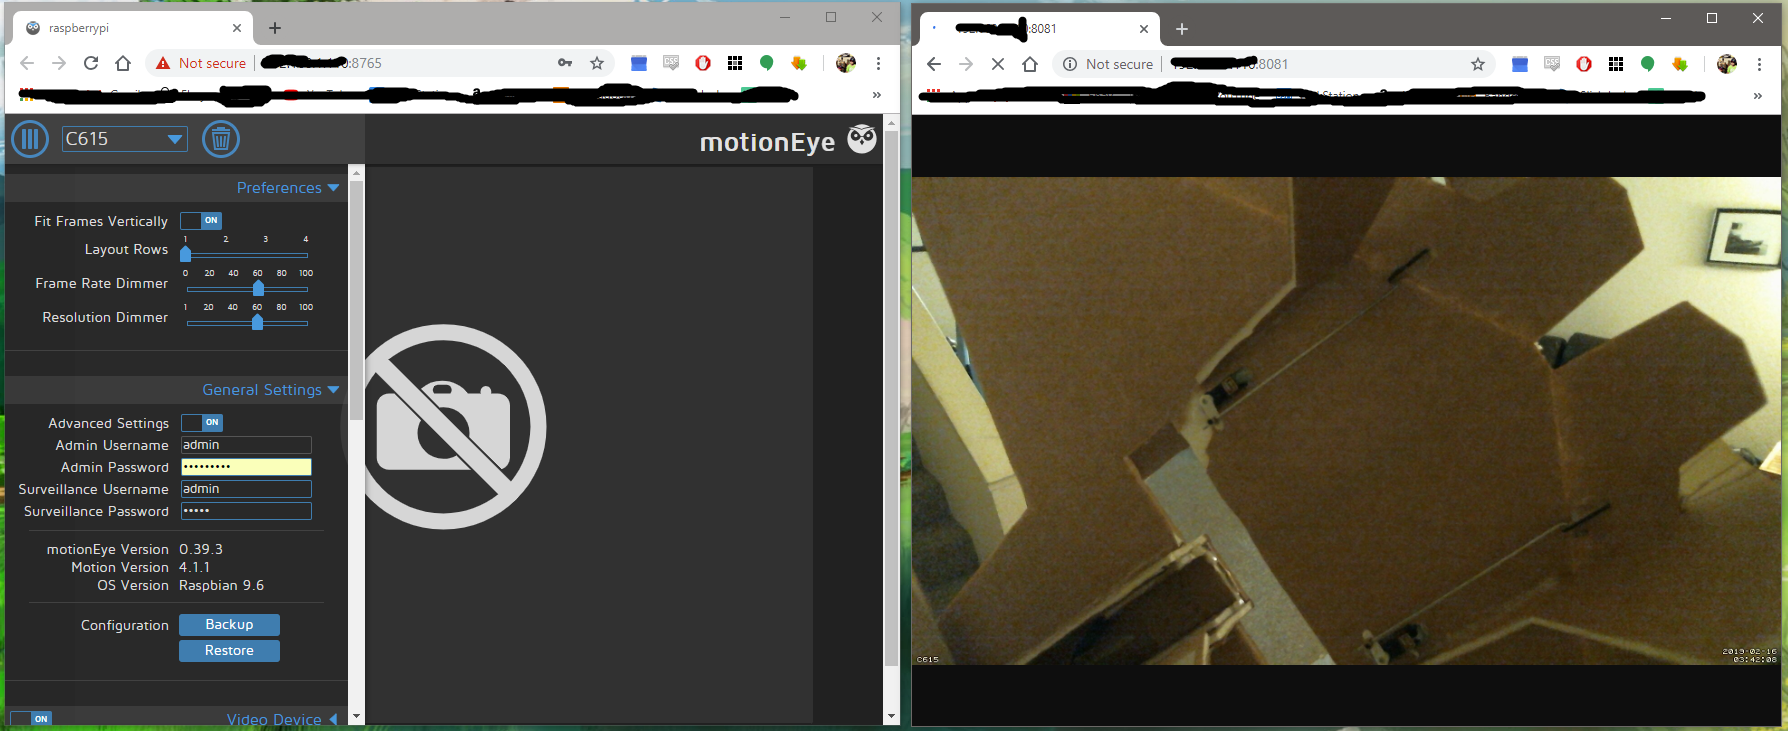 USB camera not displaying image · Issue #1142 · ccrisan/motioneye